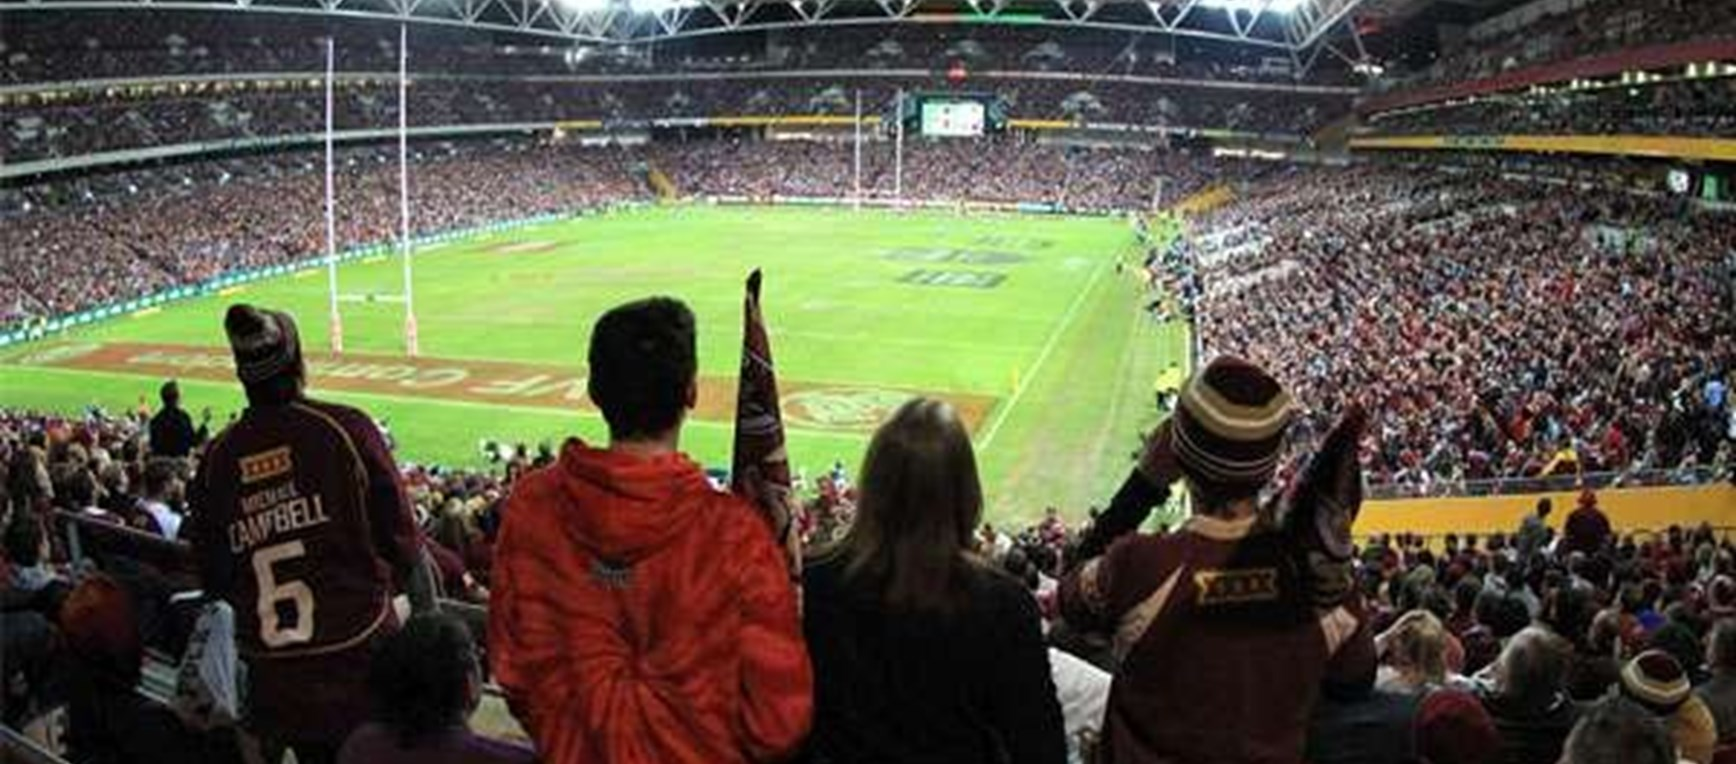 State of Origin 2 Crowd Photos